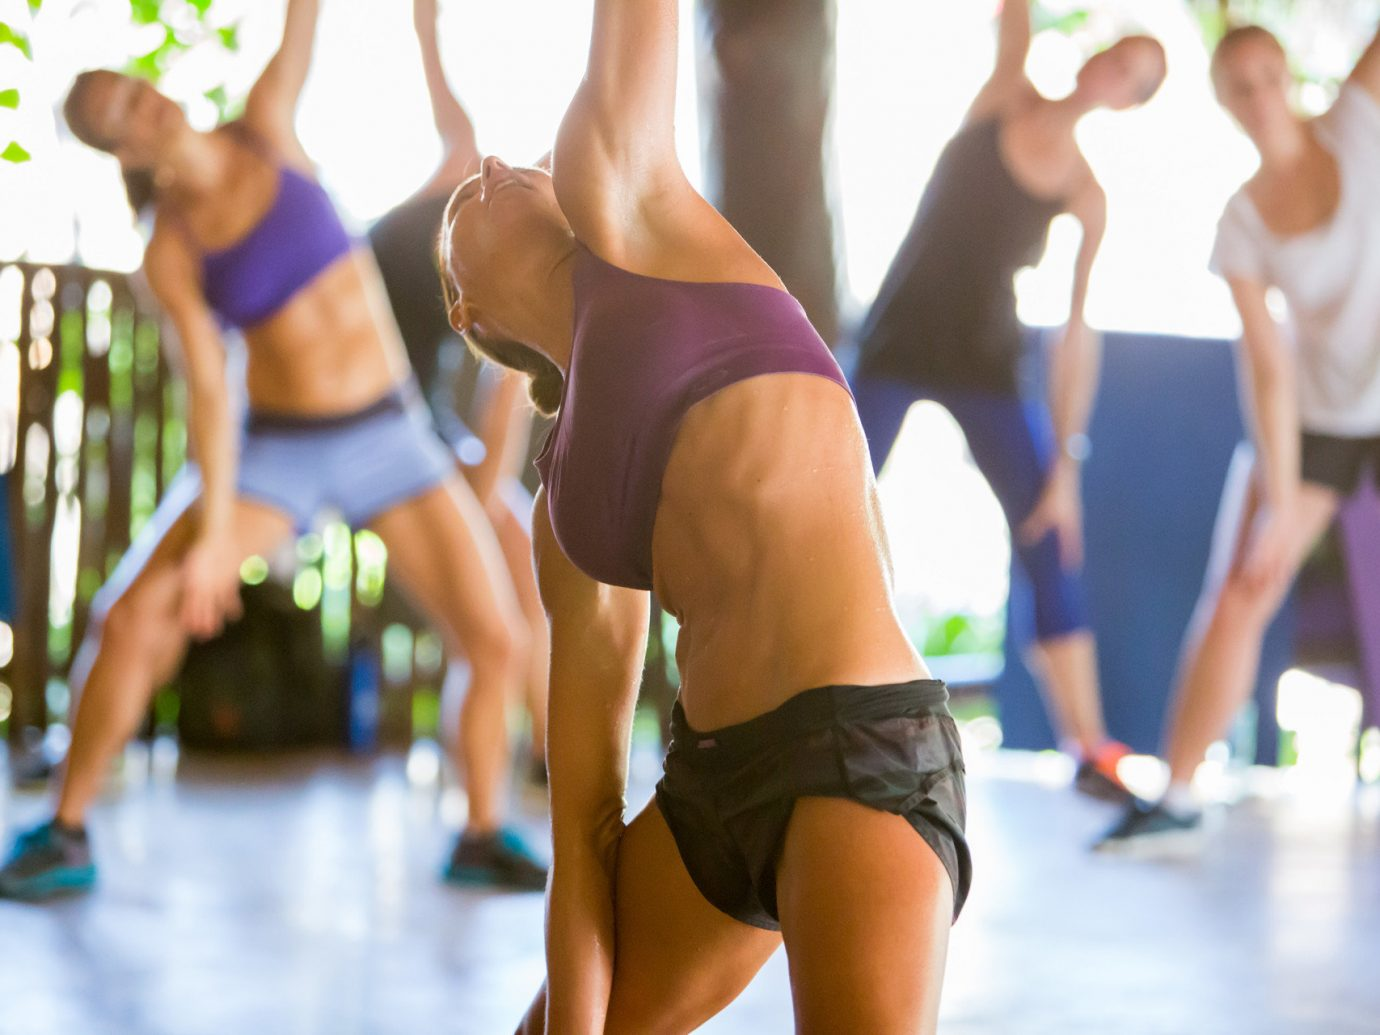 Health + Wellness Hotels Yoga Retreats person woman human action sports structure Sport sport venue physical fitness physical exercise female swimsuit